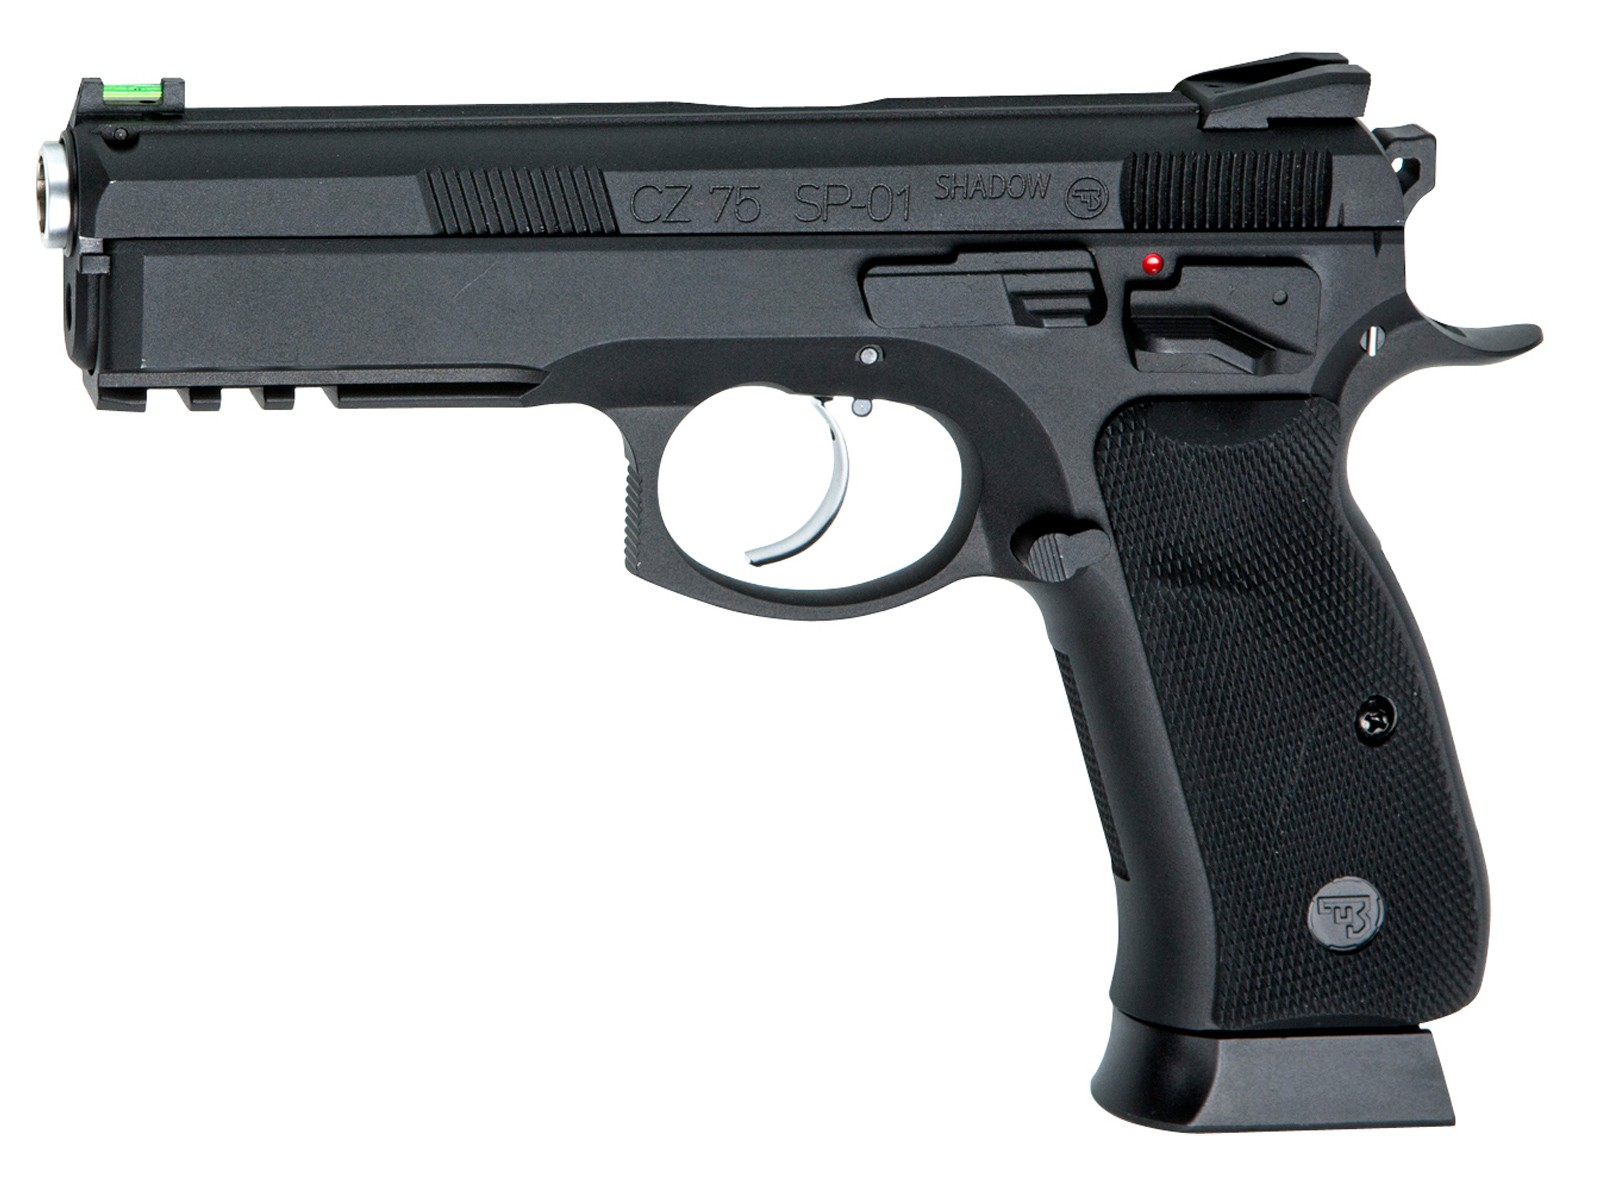 ASG CZ-75 SP-01 Shadow, CO2 Full-Metal BB Pistol 0.177